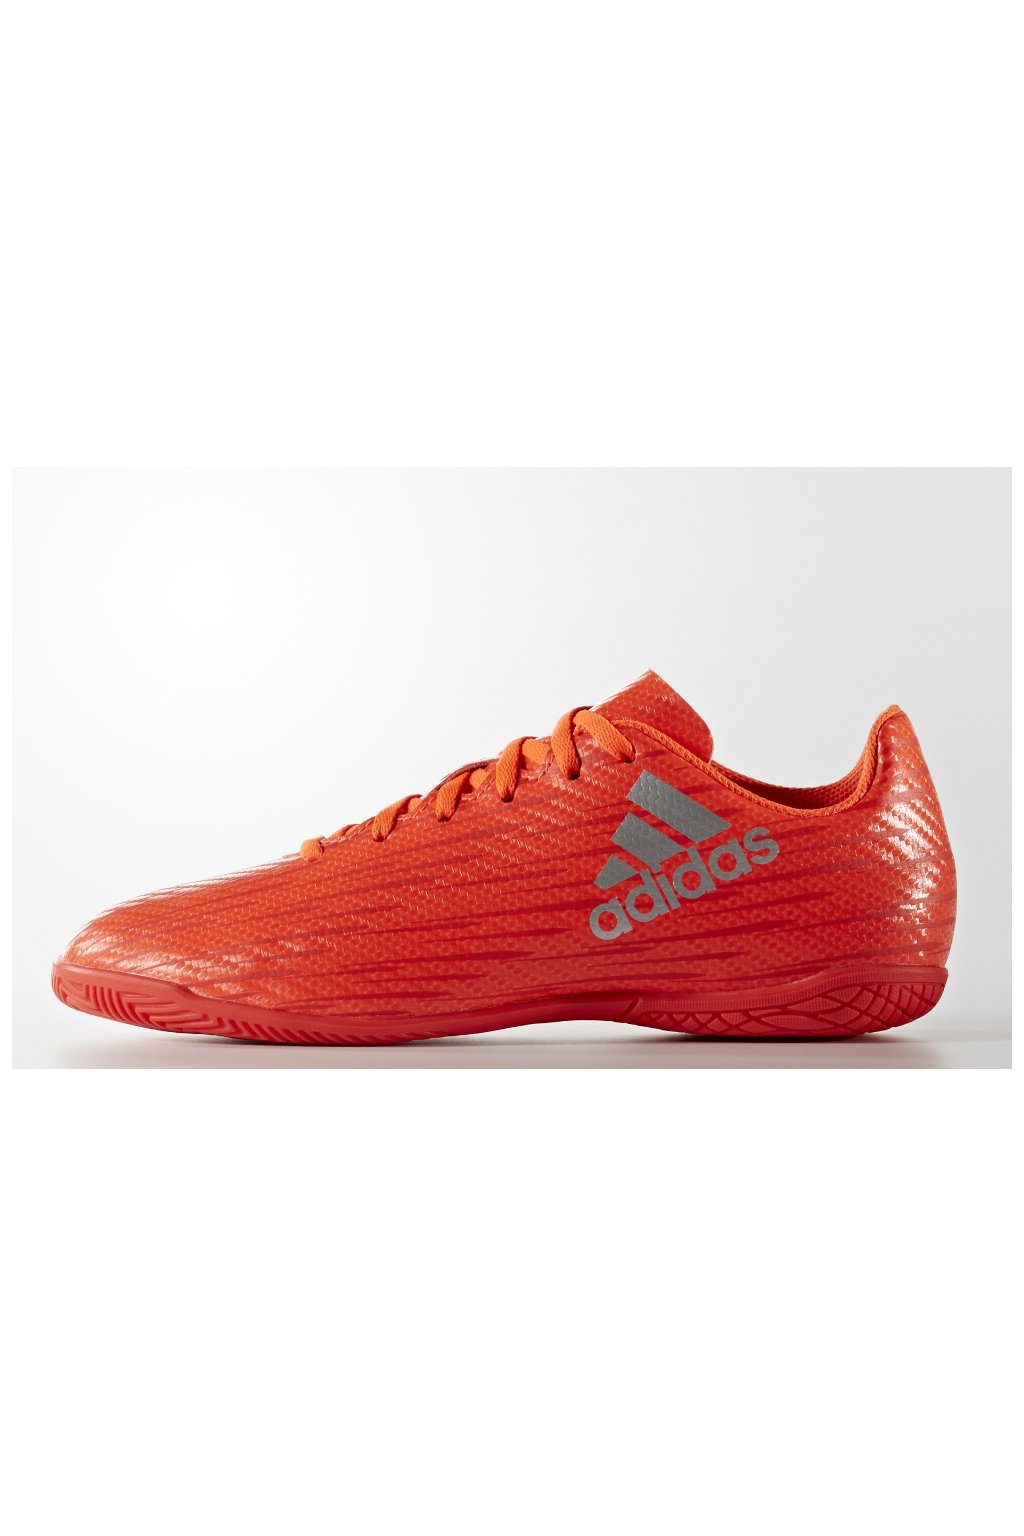 S75693 adidas x 16.4 in j f